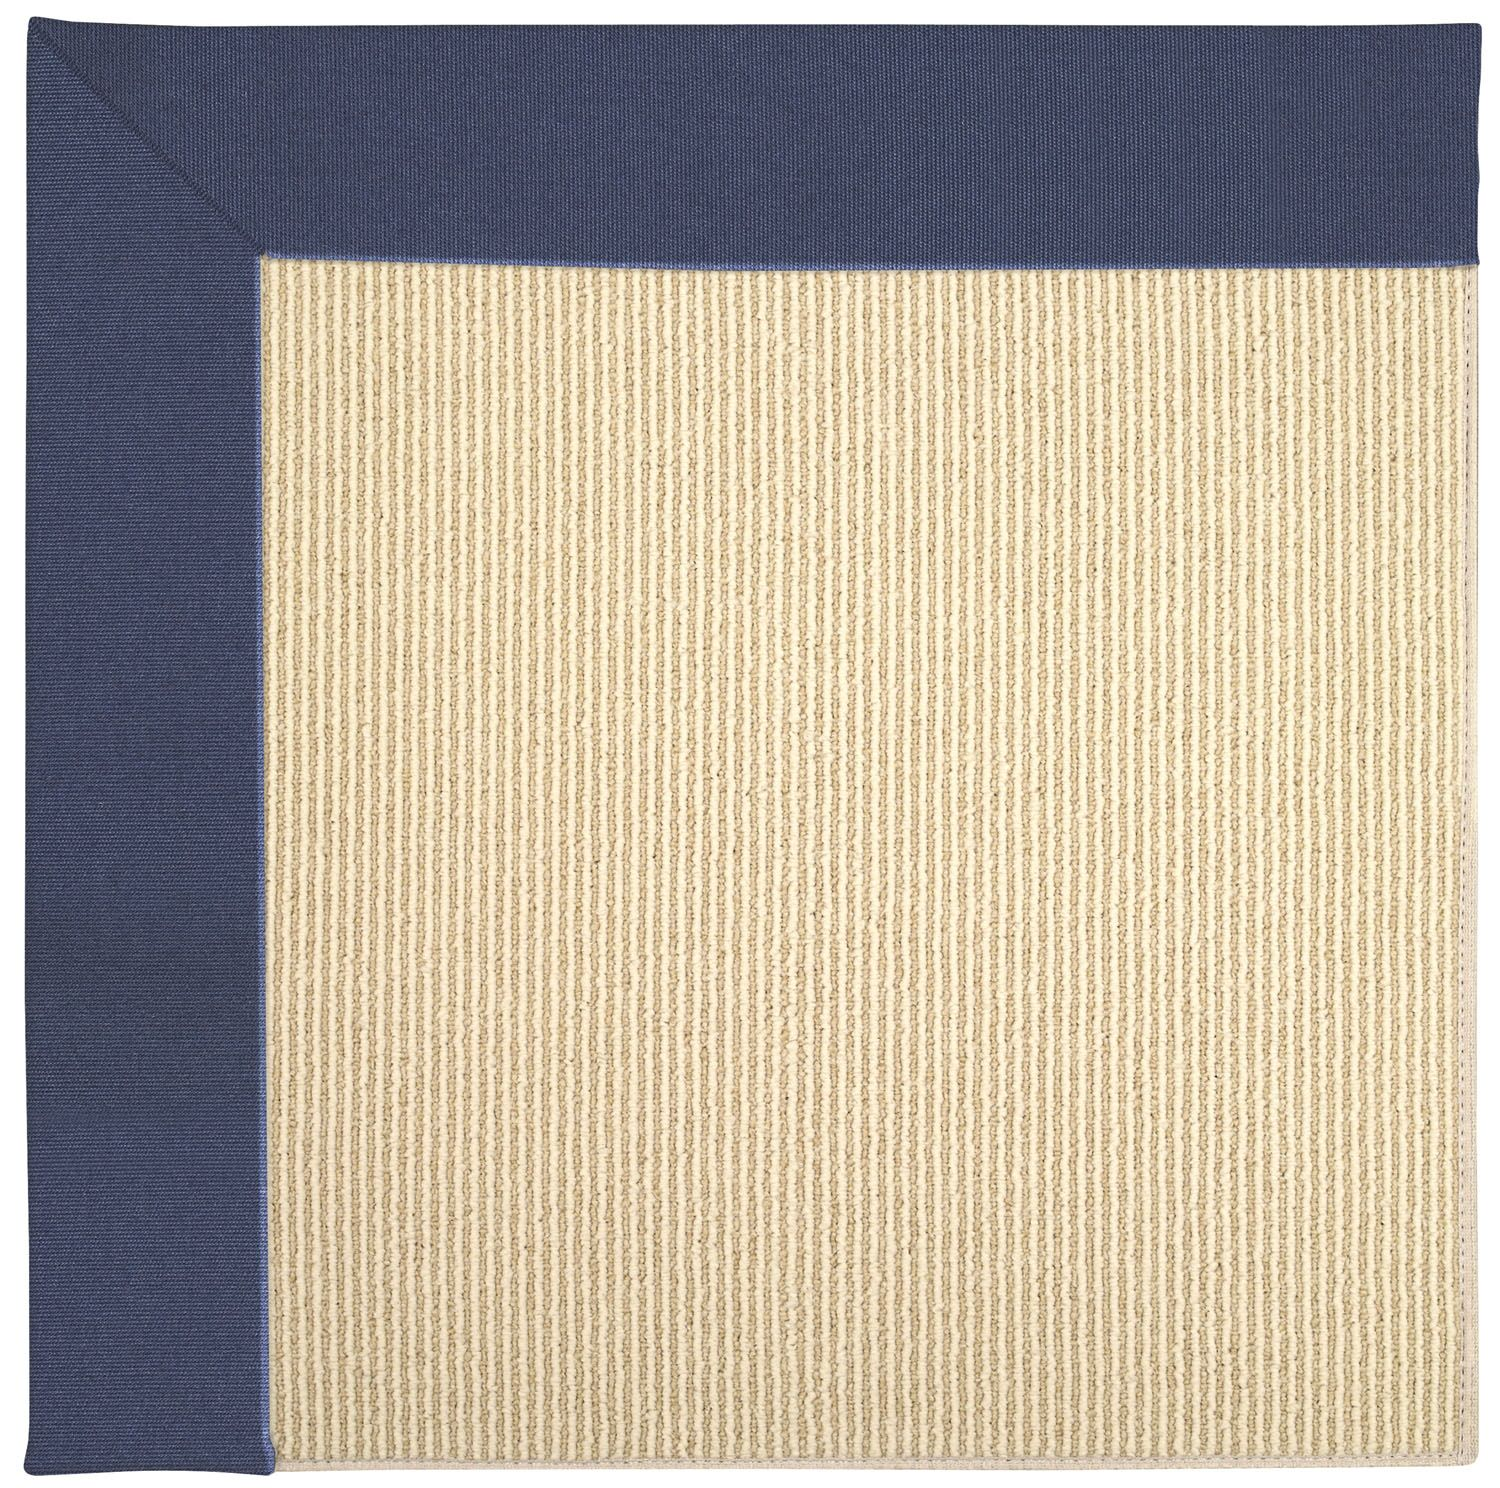 Lisle Machine Tufted Blue/Beige Indoor/Outdoor Area Rug Rug Size: Rectangle 3' x 5'